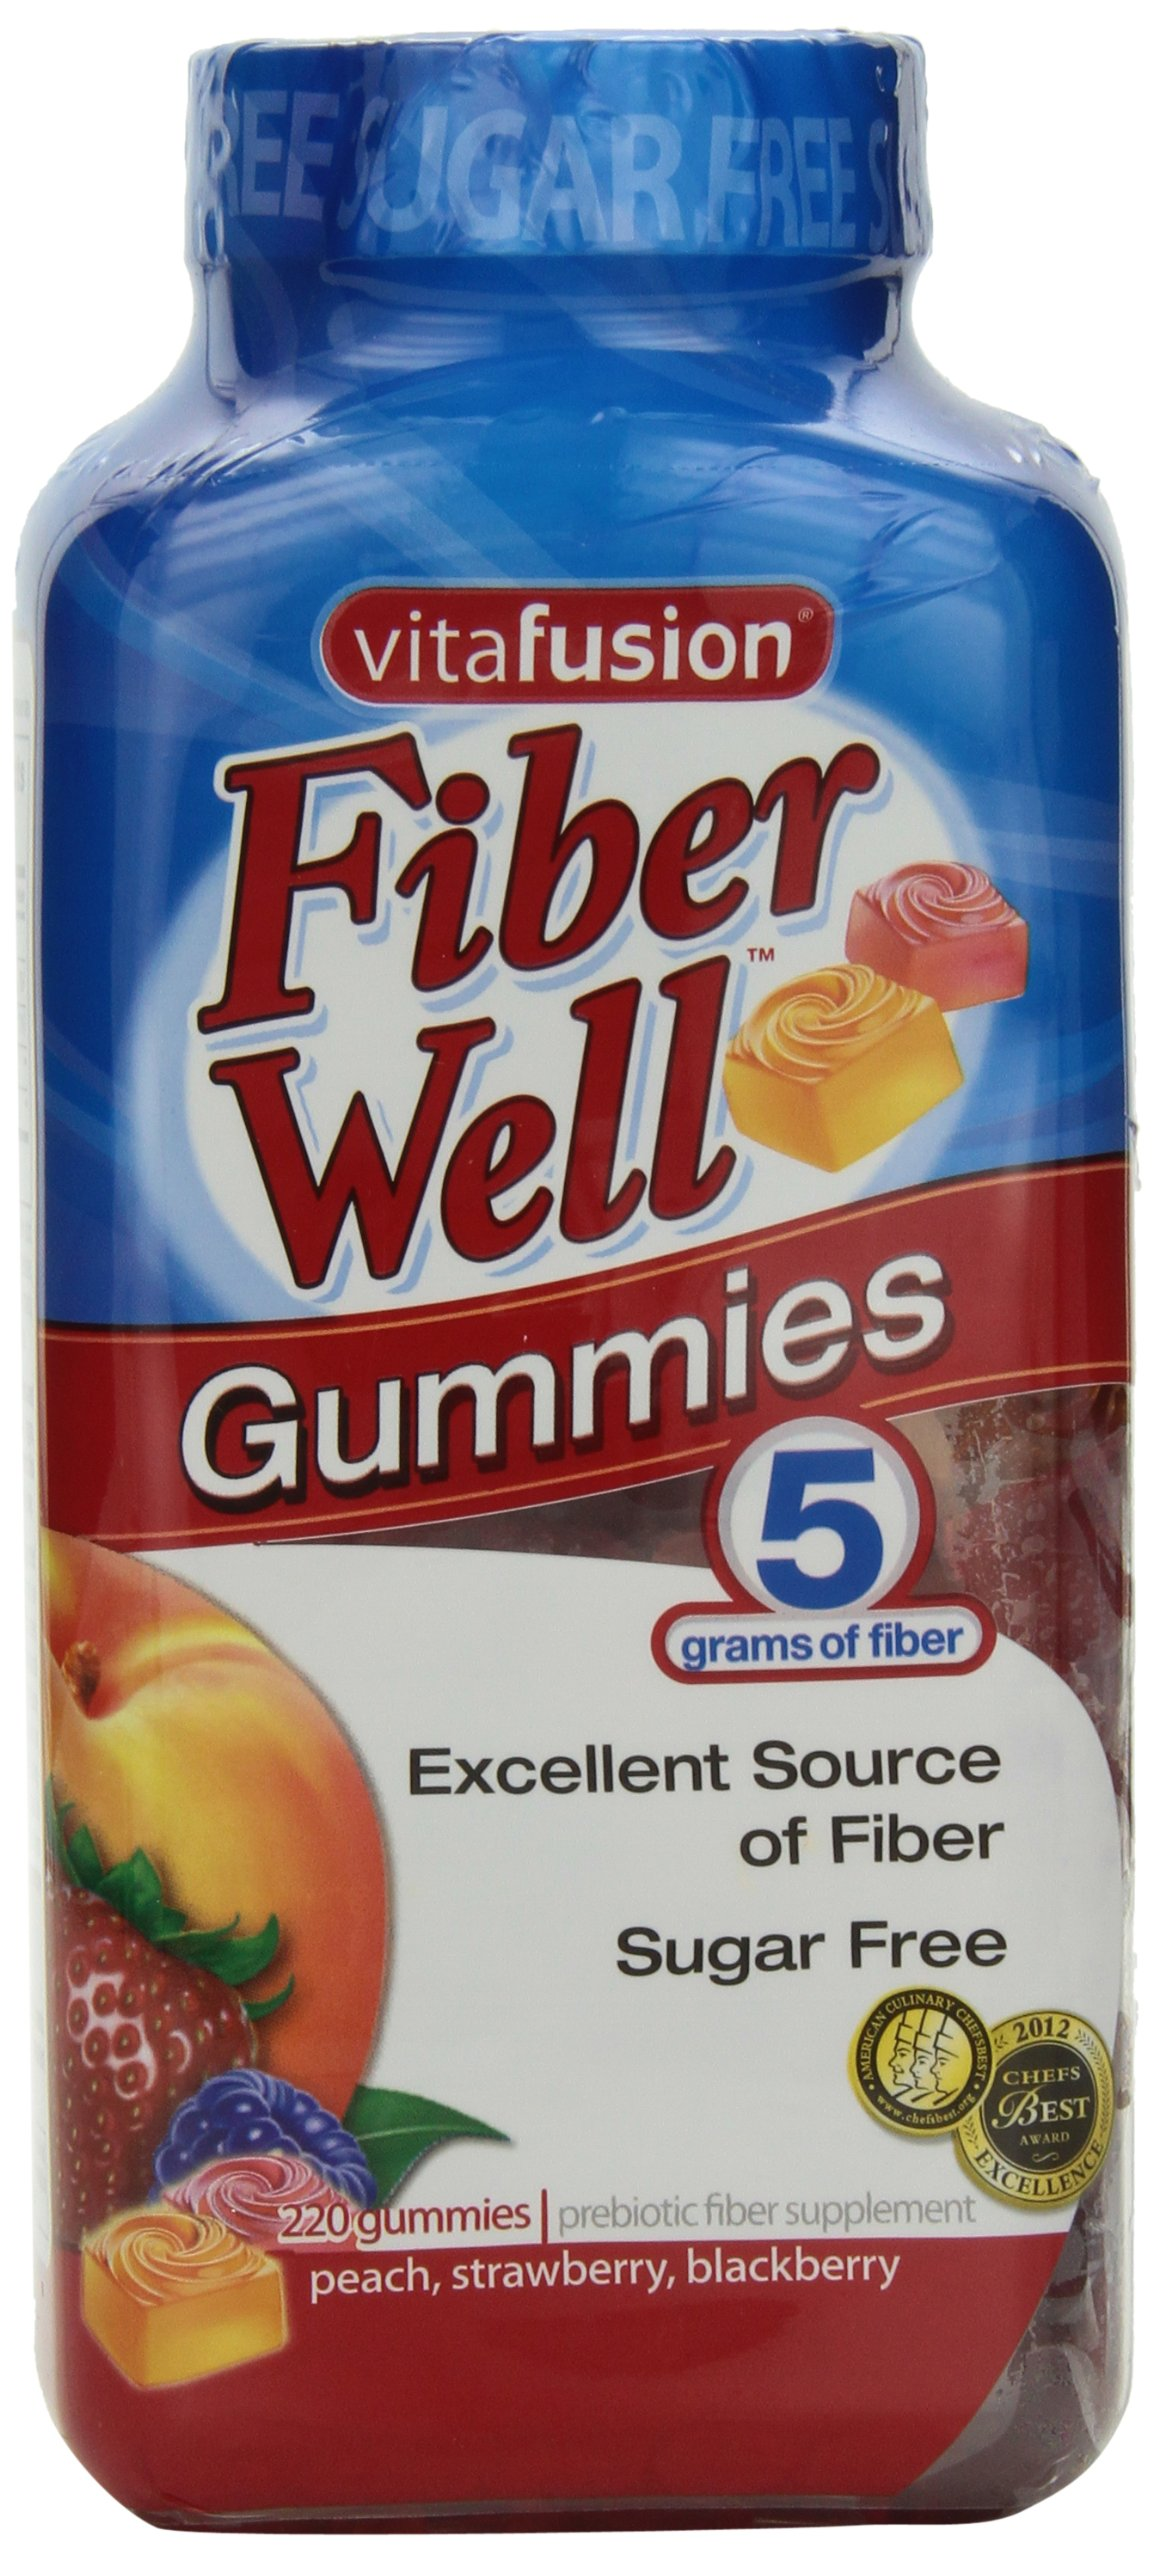 vitafusion Fiber Gummies, 220 Count,5g of fiber,Sugar Free